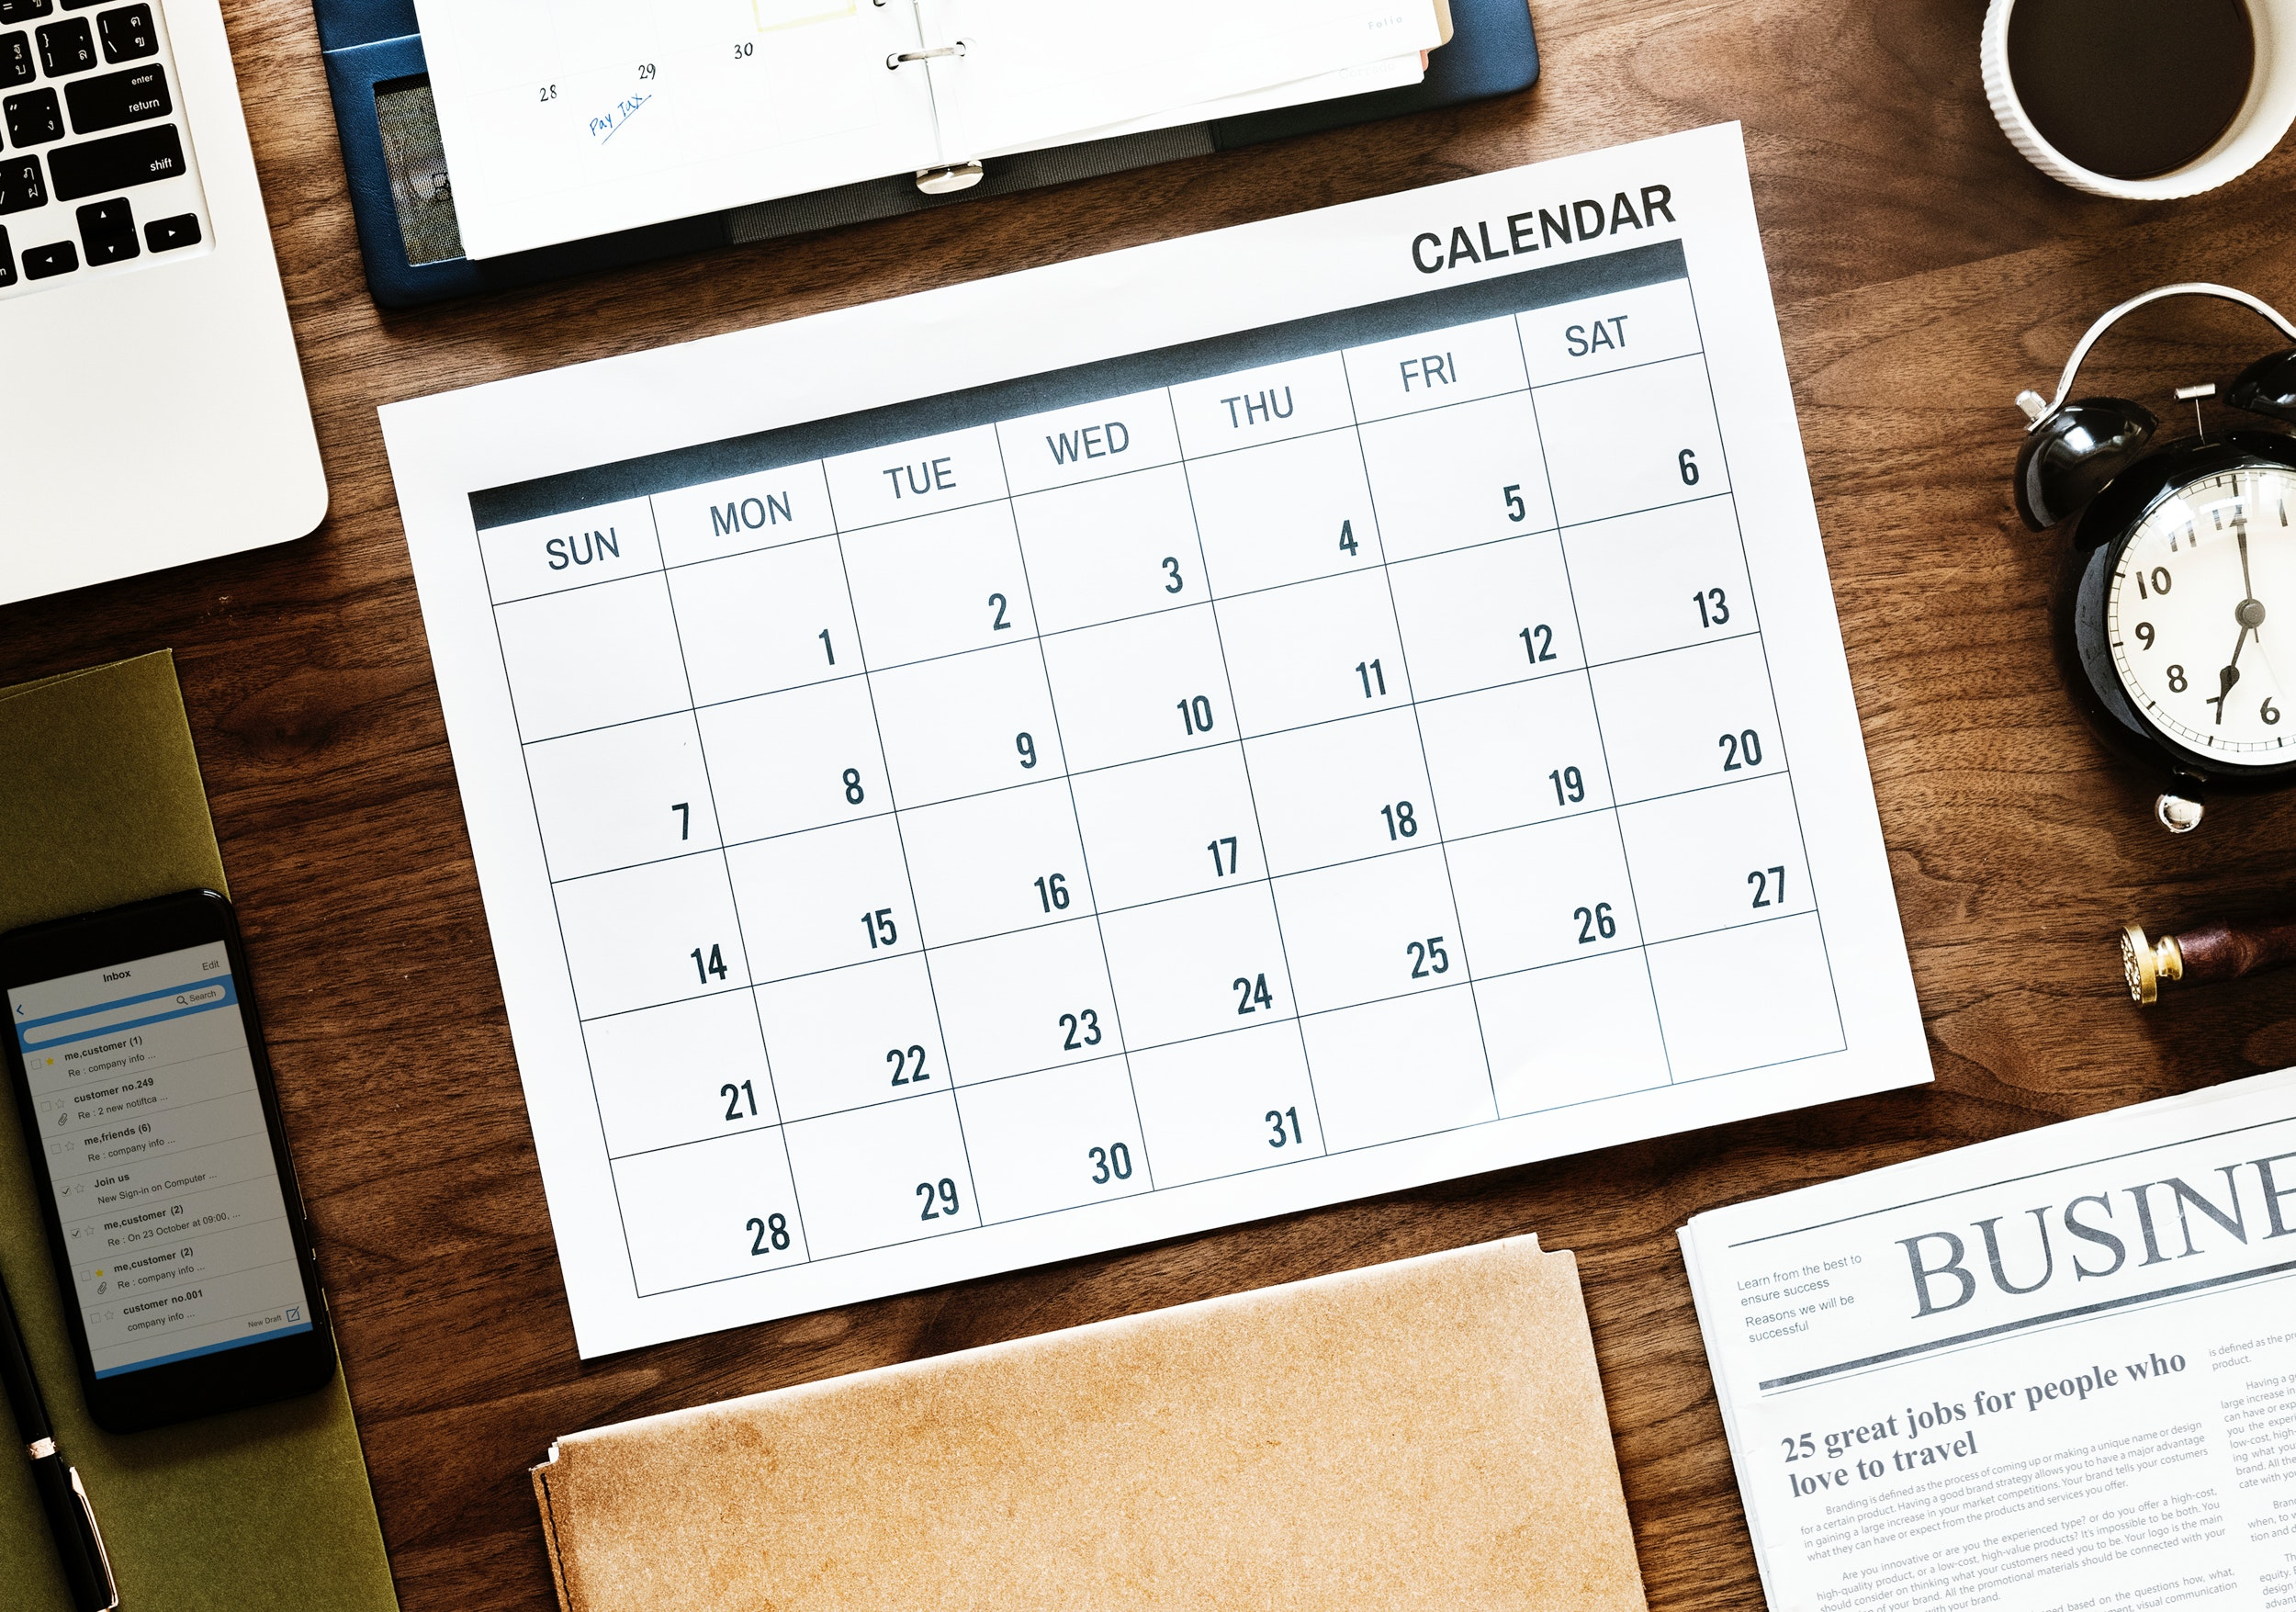 Photo: https://www.pexels.com/photo/flat-lay-photography-of-calendar-1020323/